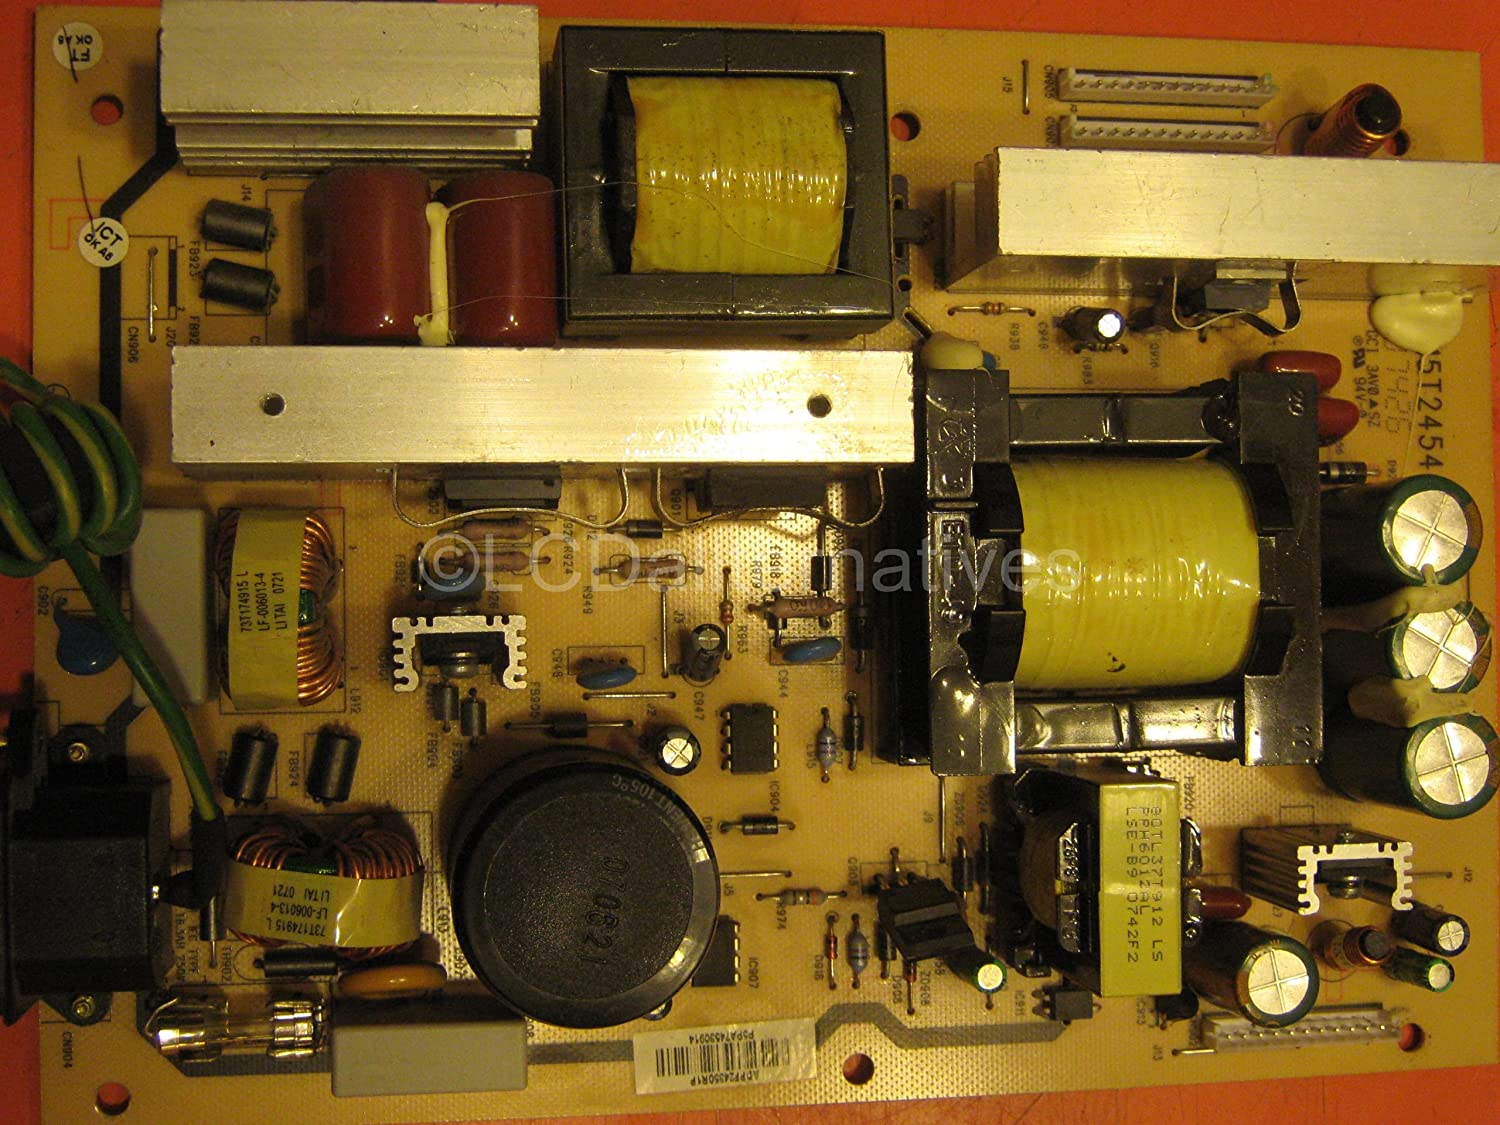 MAGNAVOX 47mf437b37 LCD TV Repair Kit, Capacitors and Diodes, Not the on